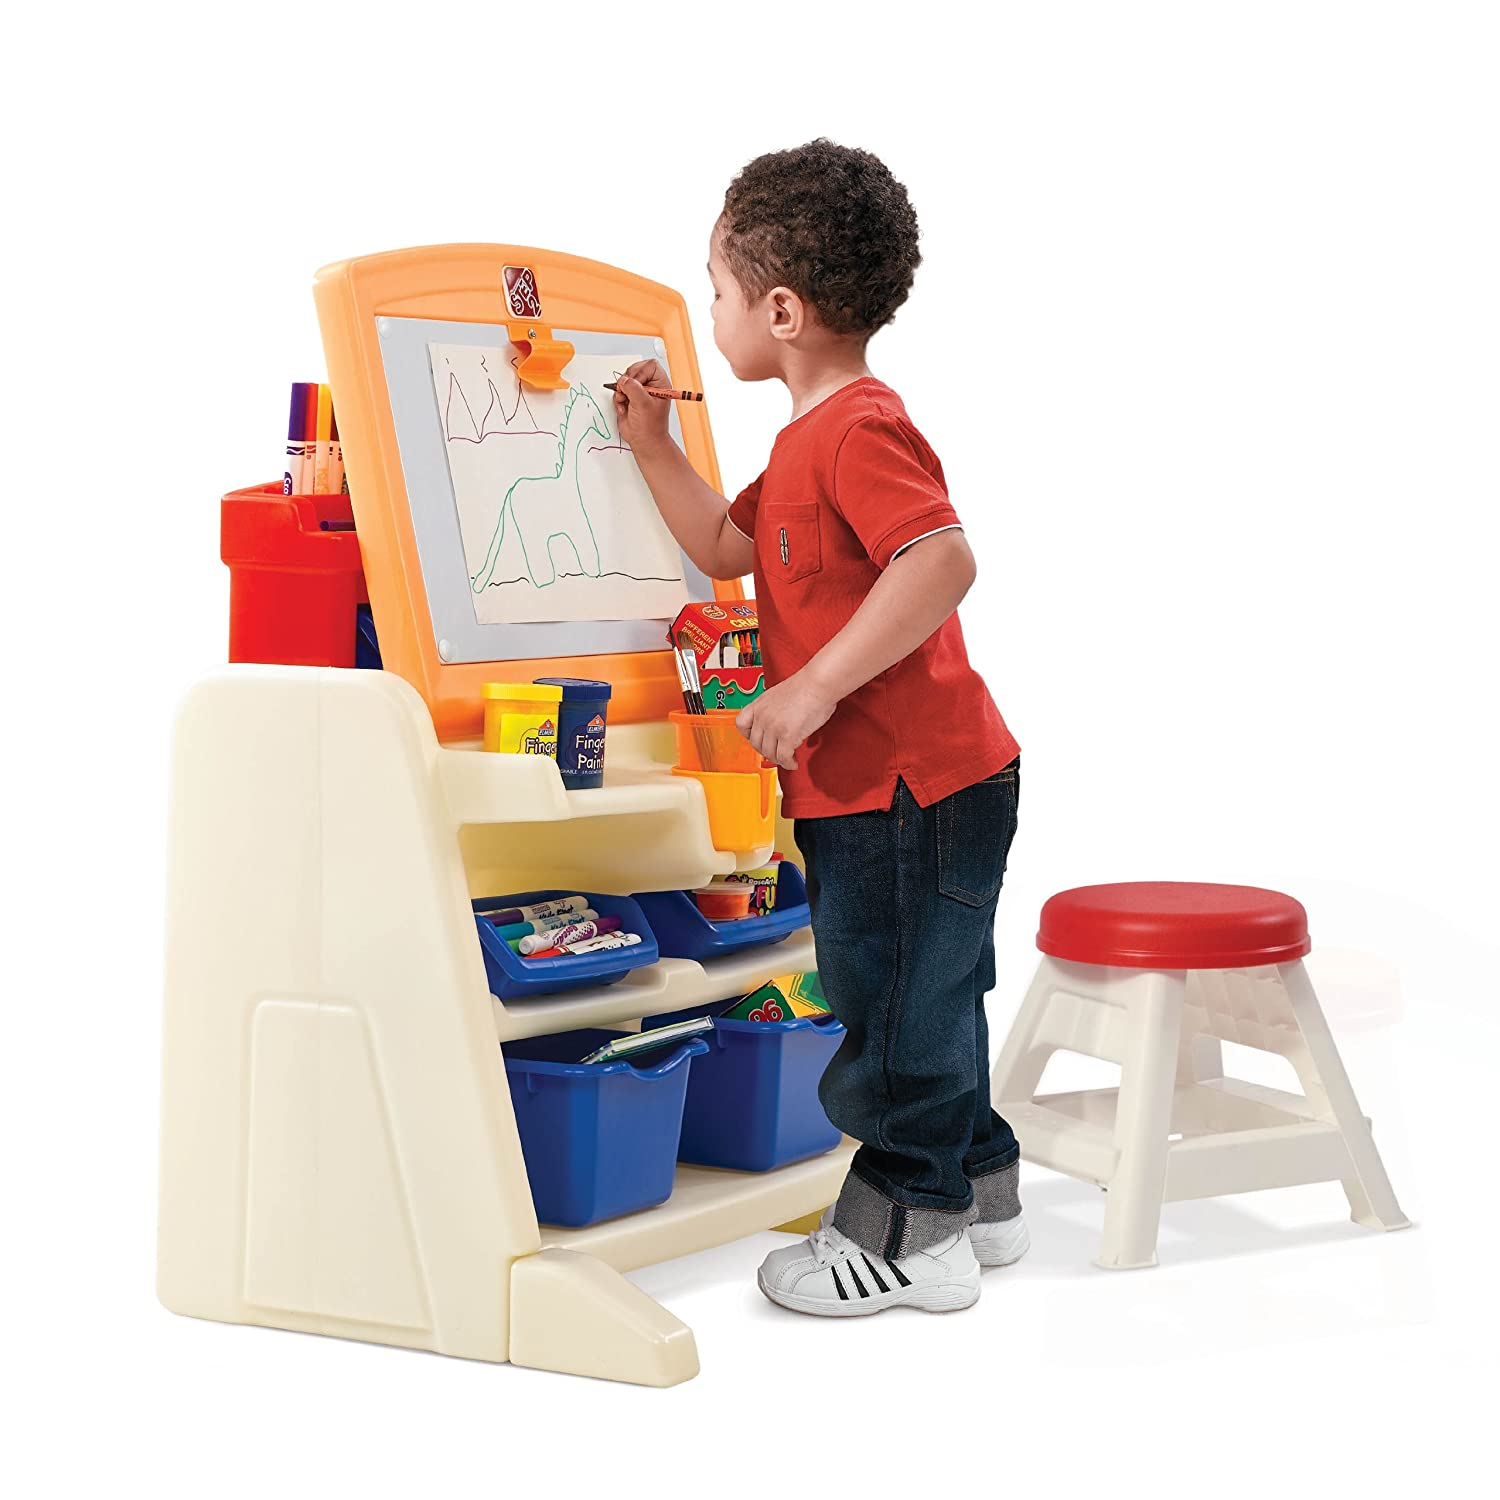 Amazon.com: Step2 Flip and Doodle Easel Desk with Stool: Toys & Games